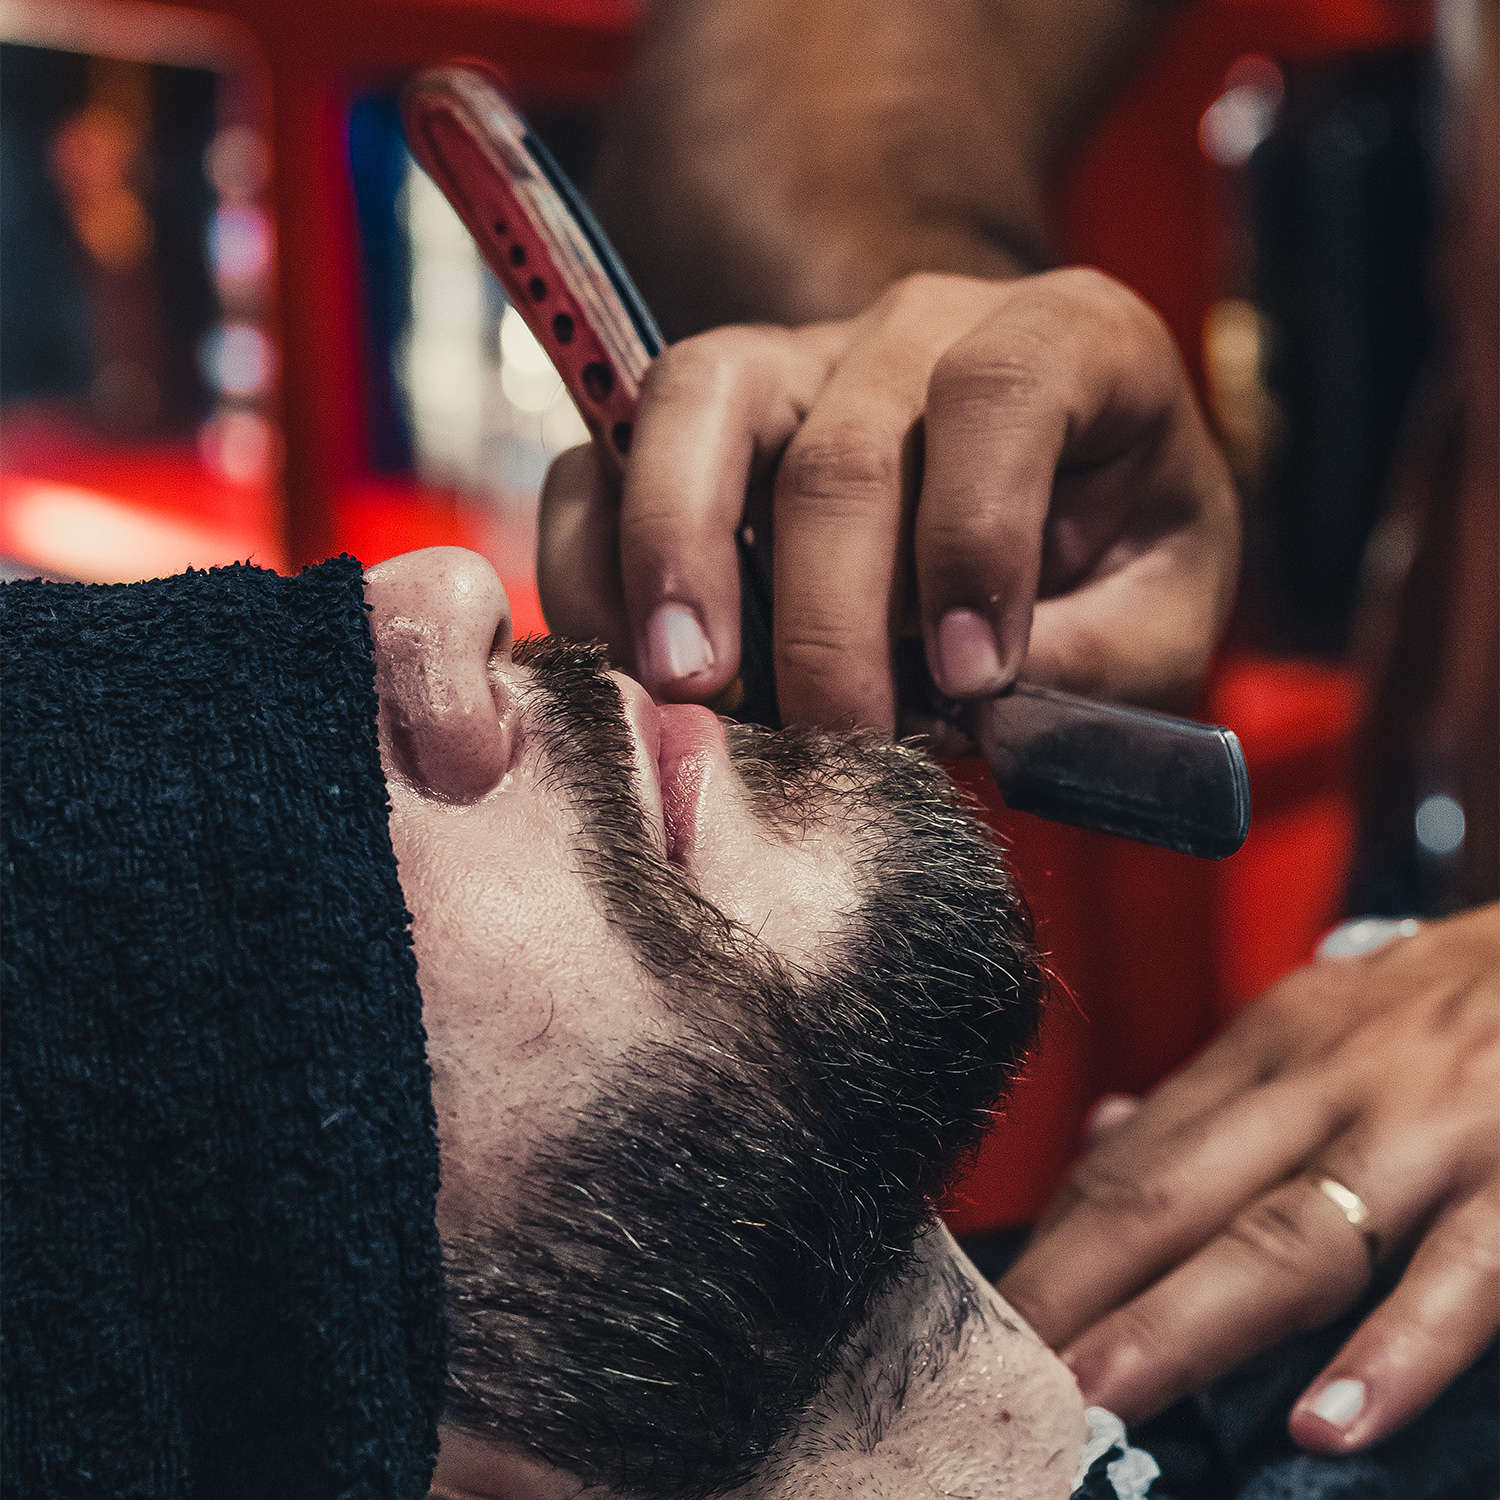 barber_barbershop_facial_hair_Photo-by-Thgusstavo-Santana-from-Pexels_inlinephotography_square.jpg